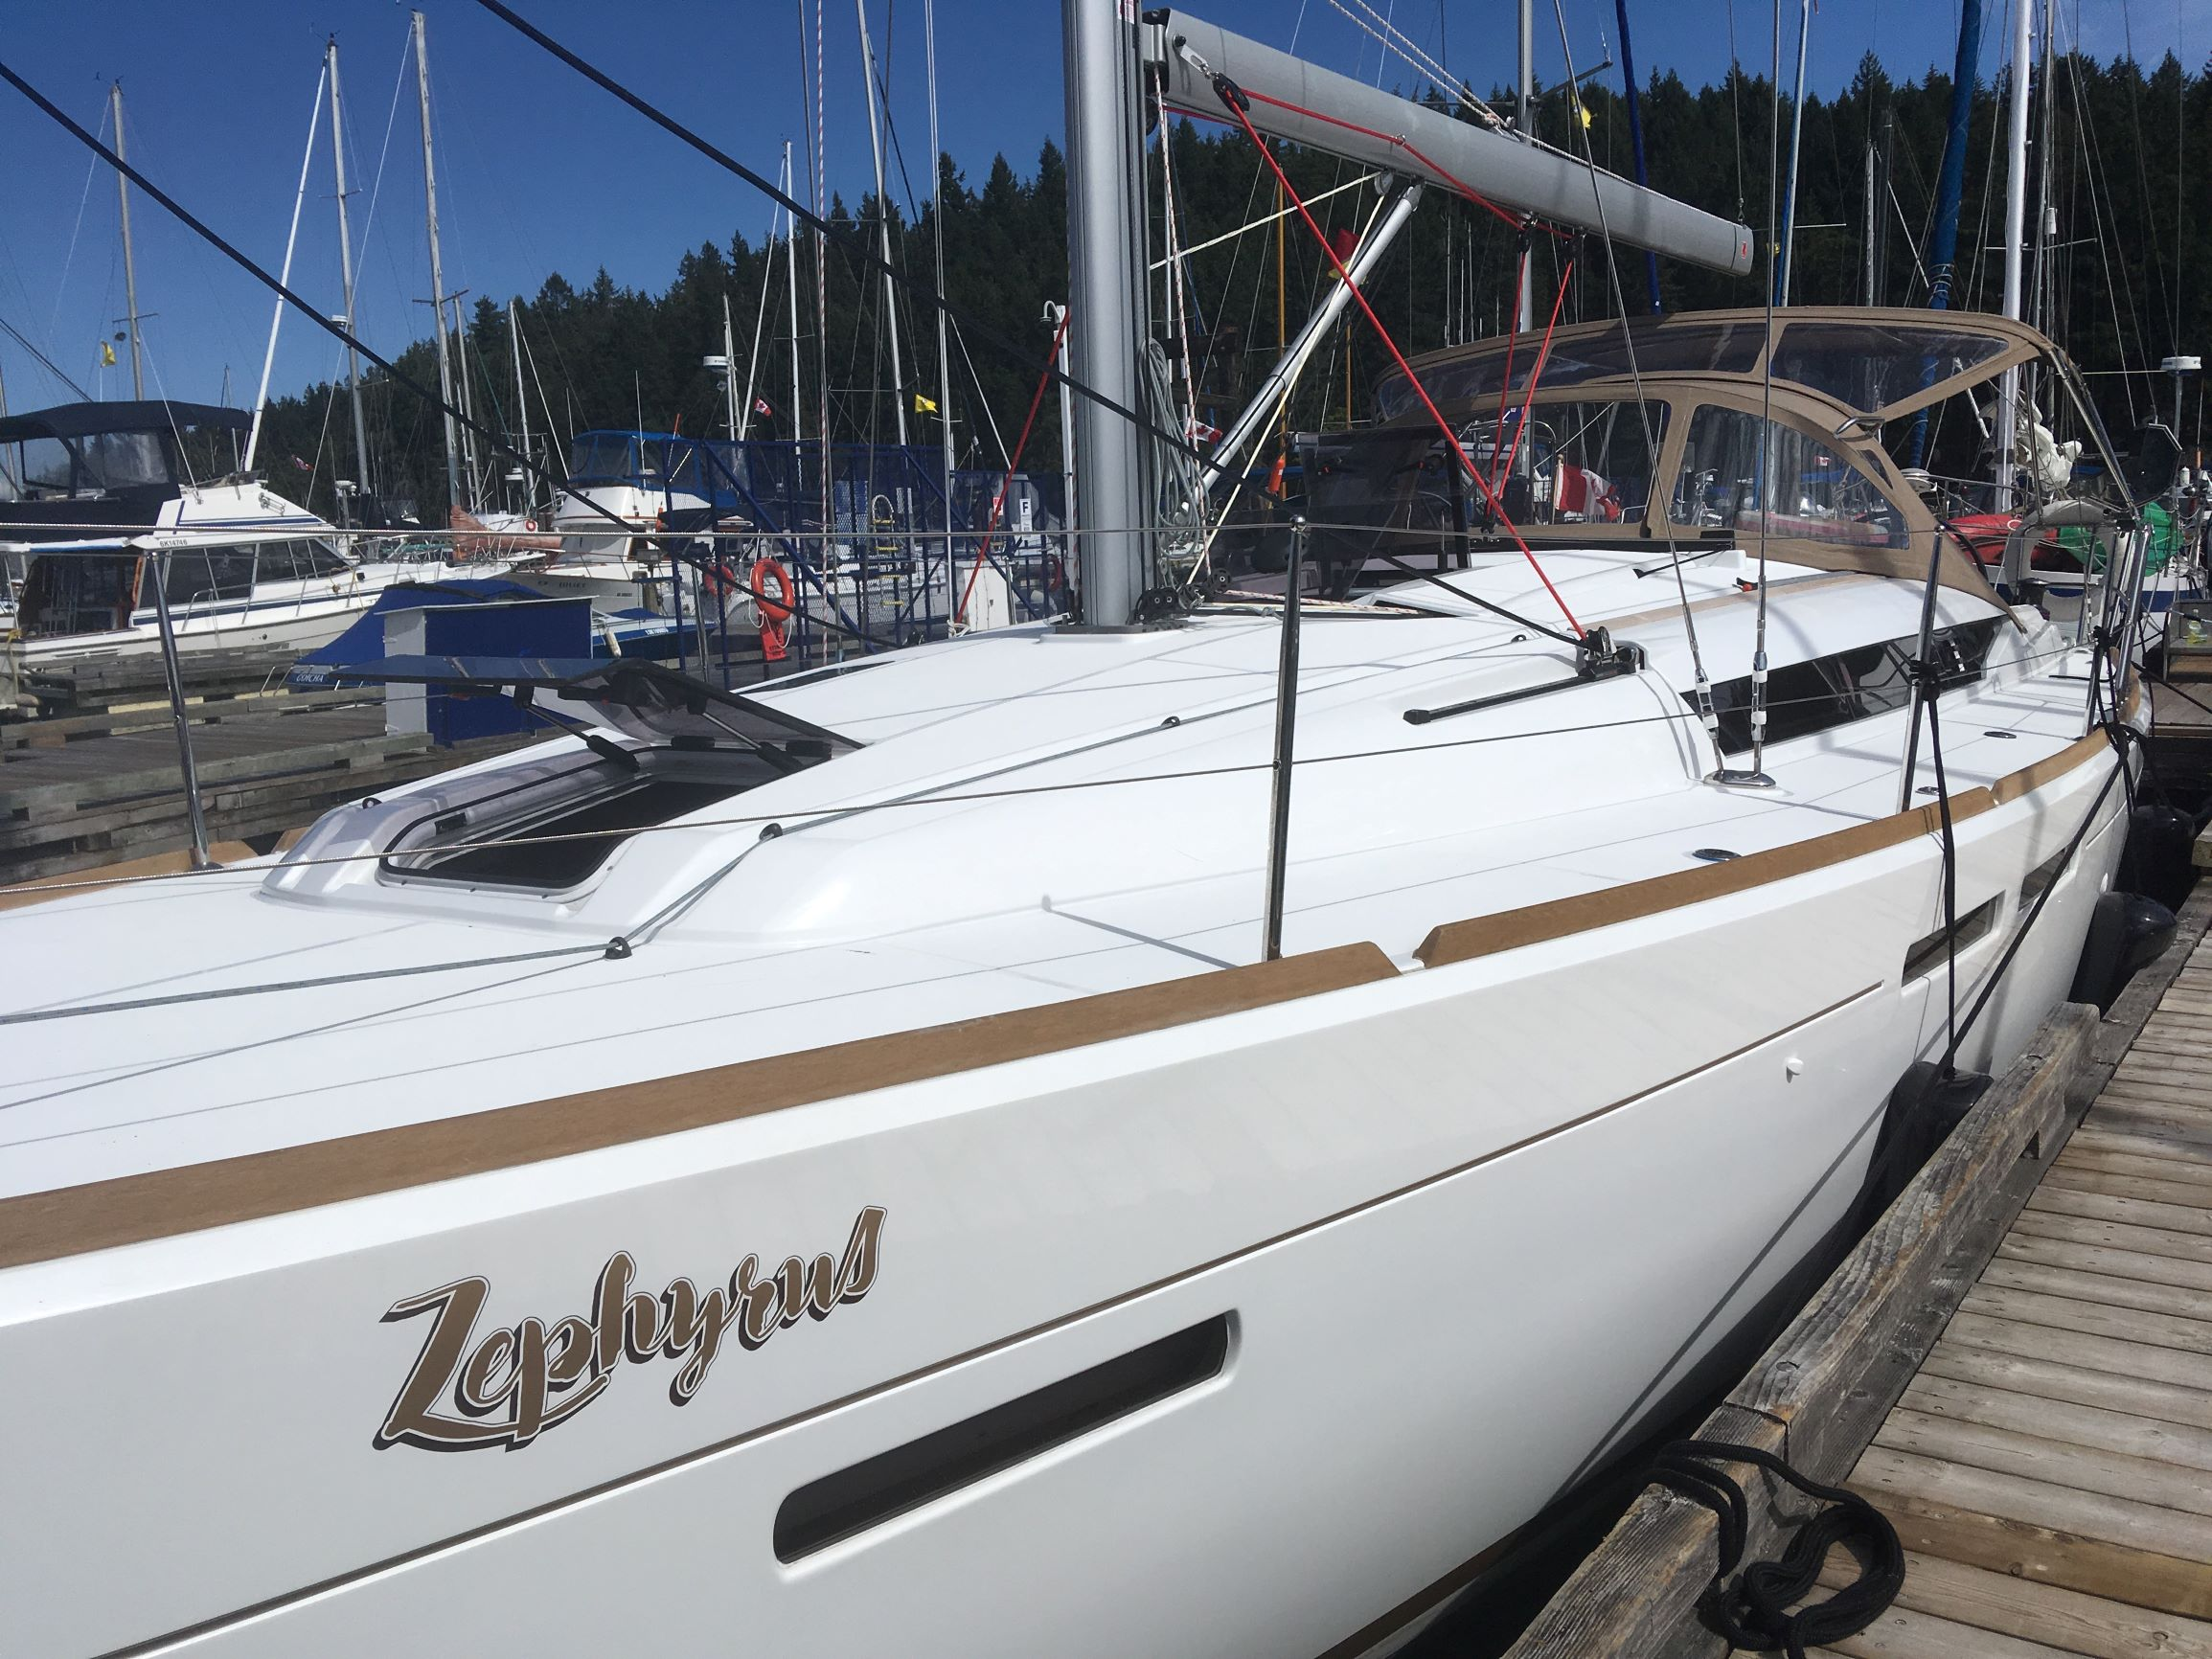 Jeanneau 419 - Zephyrus-Zephyrus - port side view.jpg